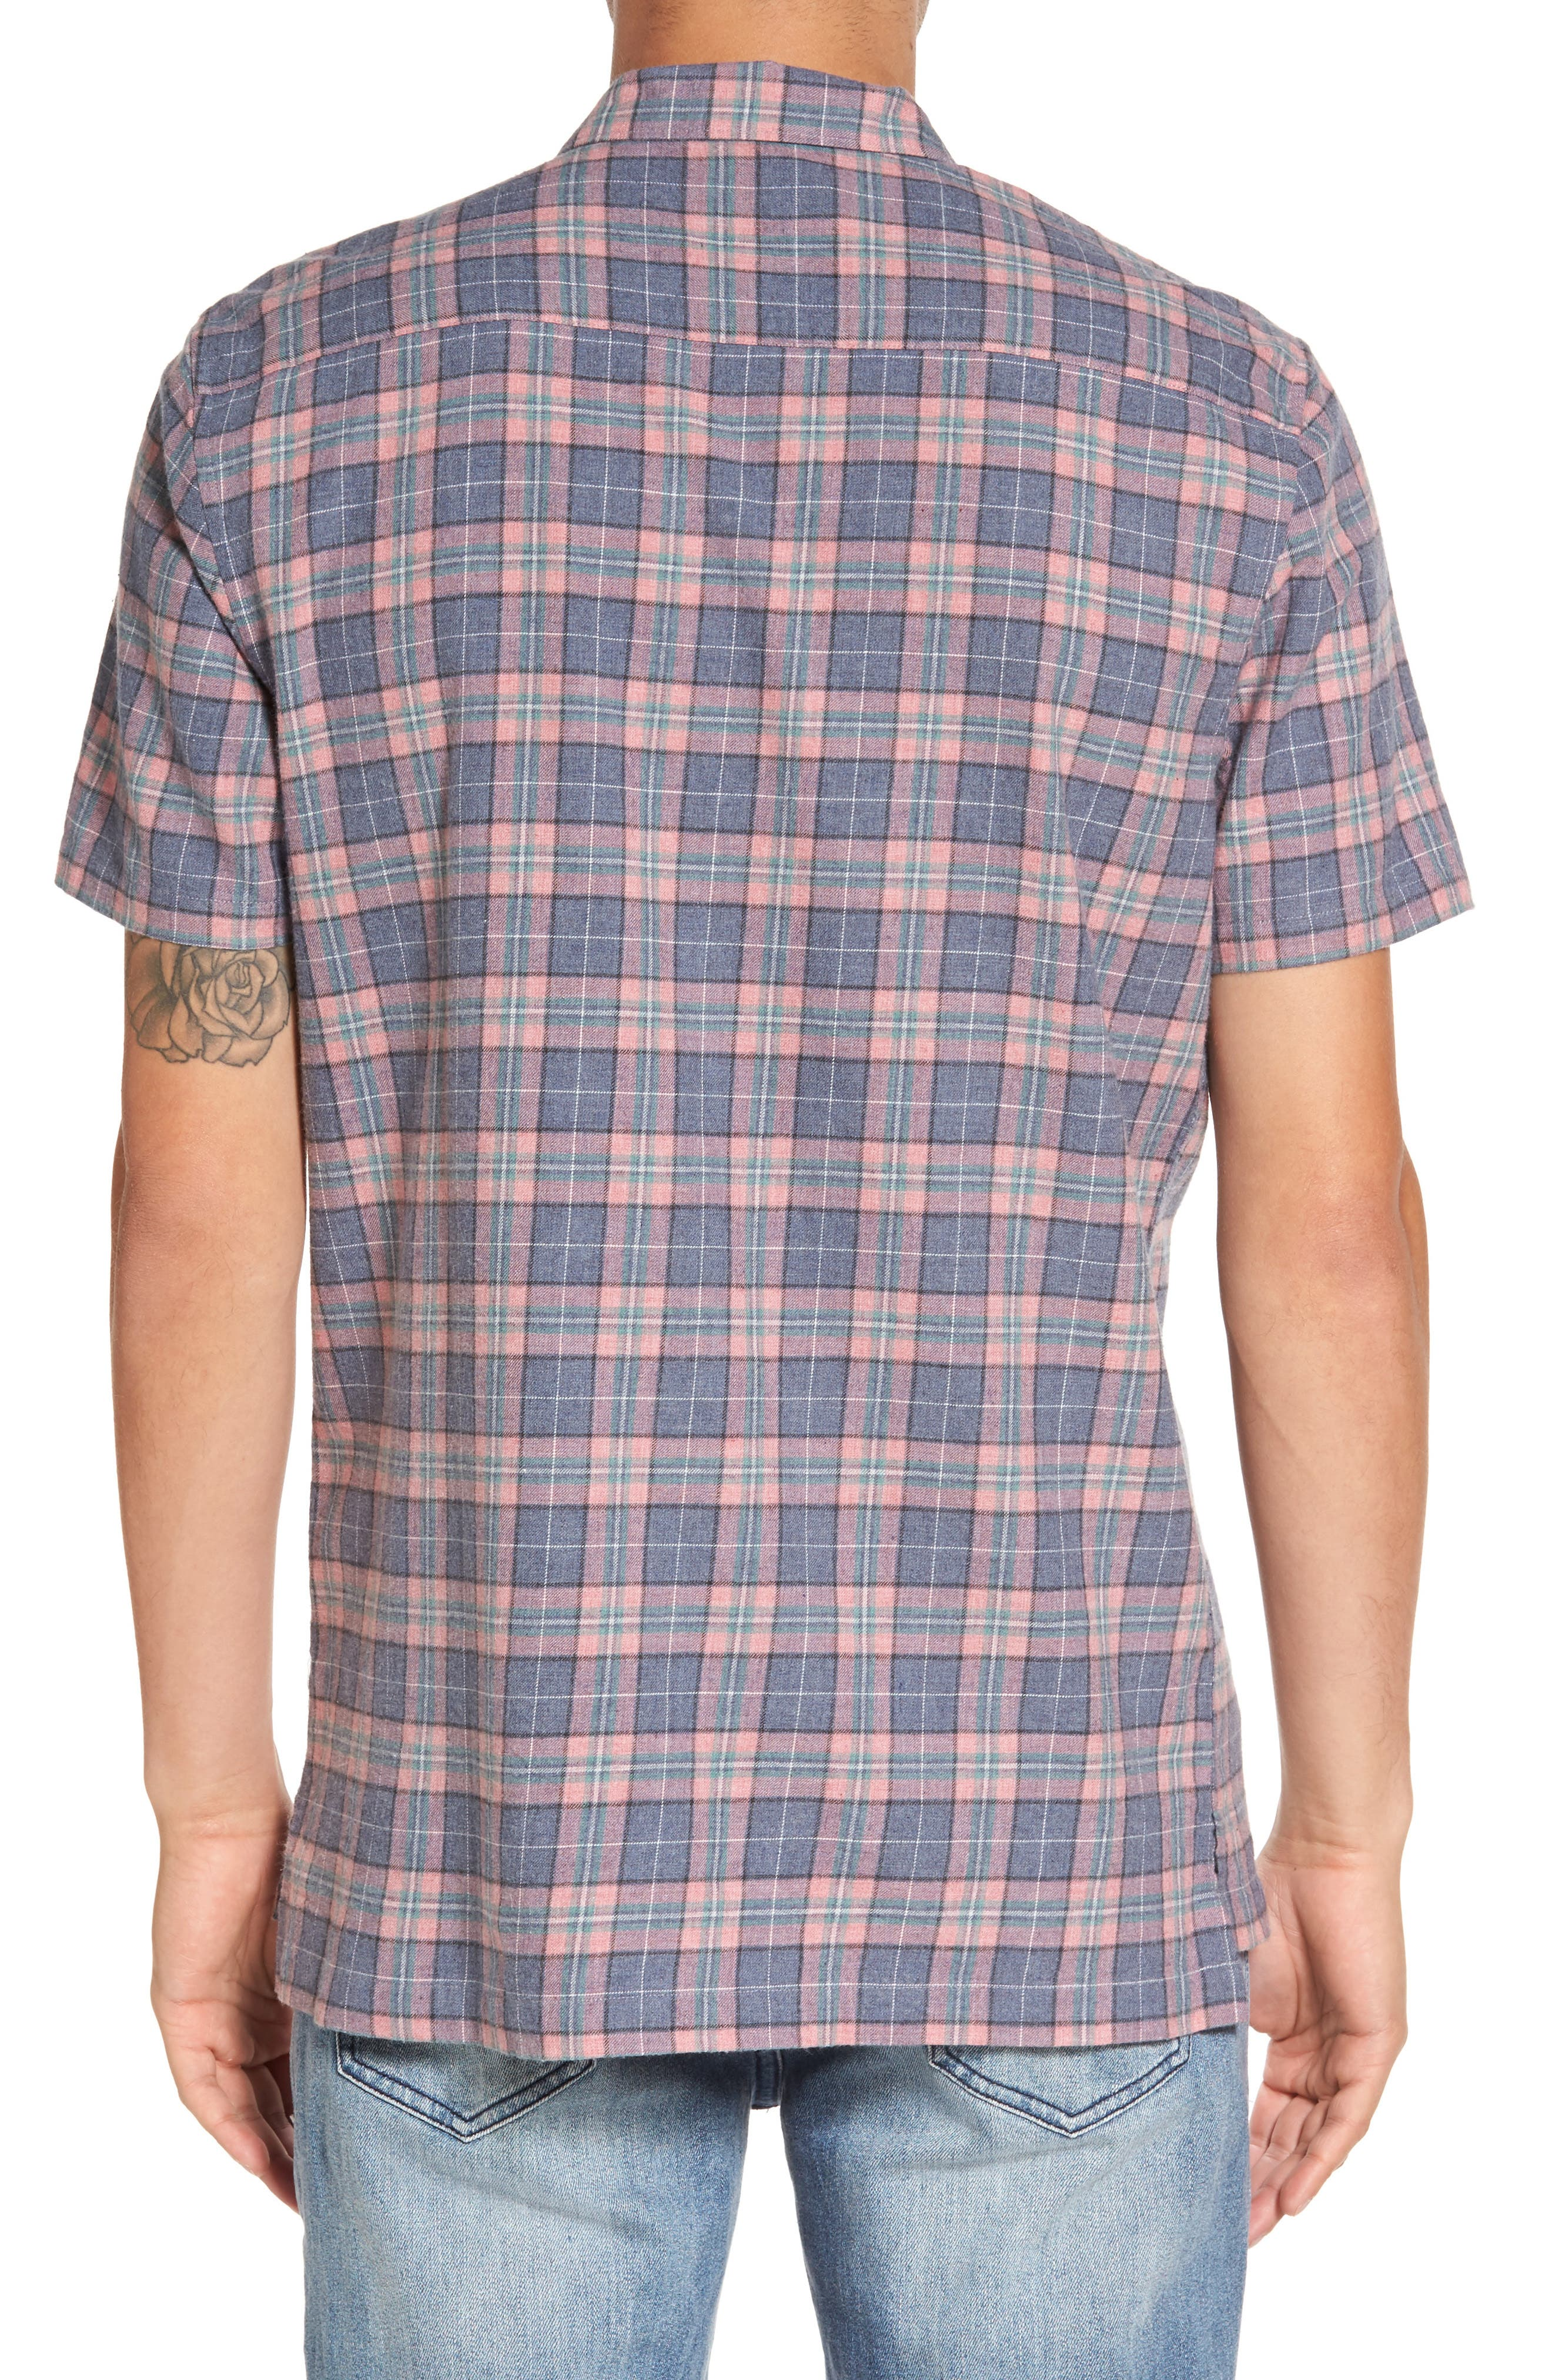 Florida Short Sleeve Plaid Shirt,                             Alternate thumbnail 2, color,                             450